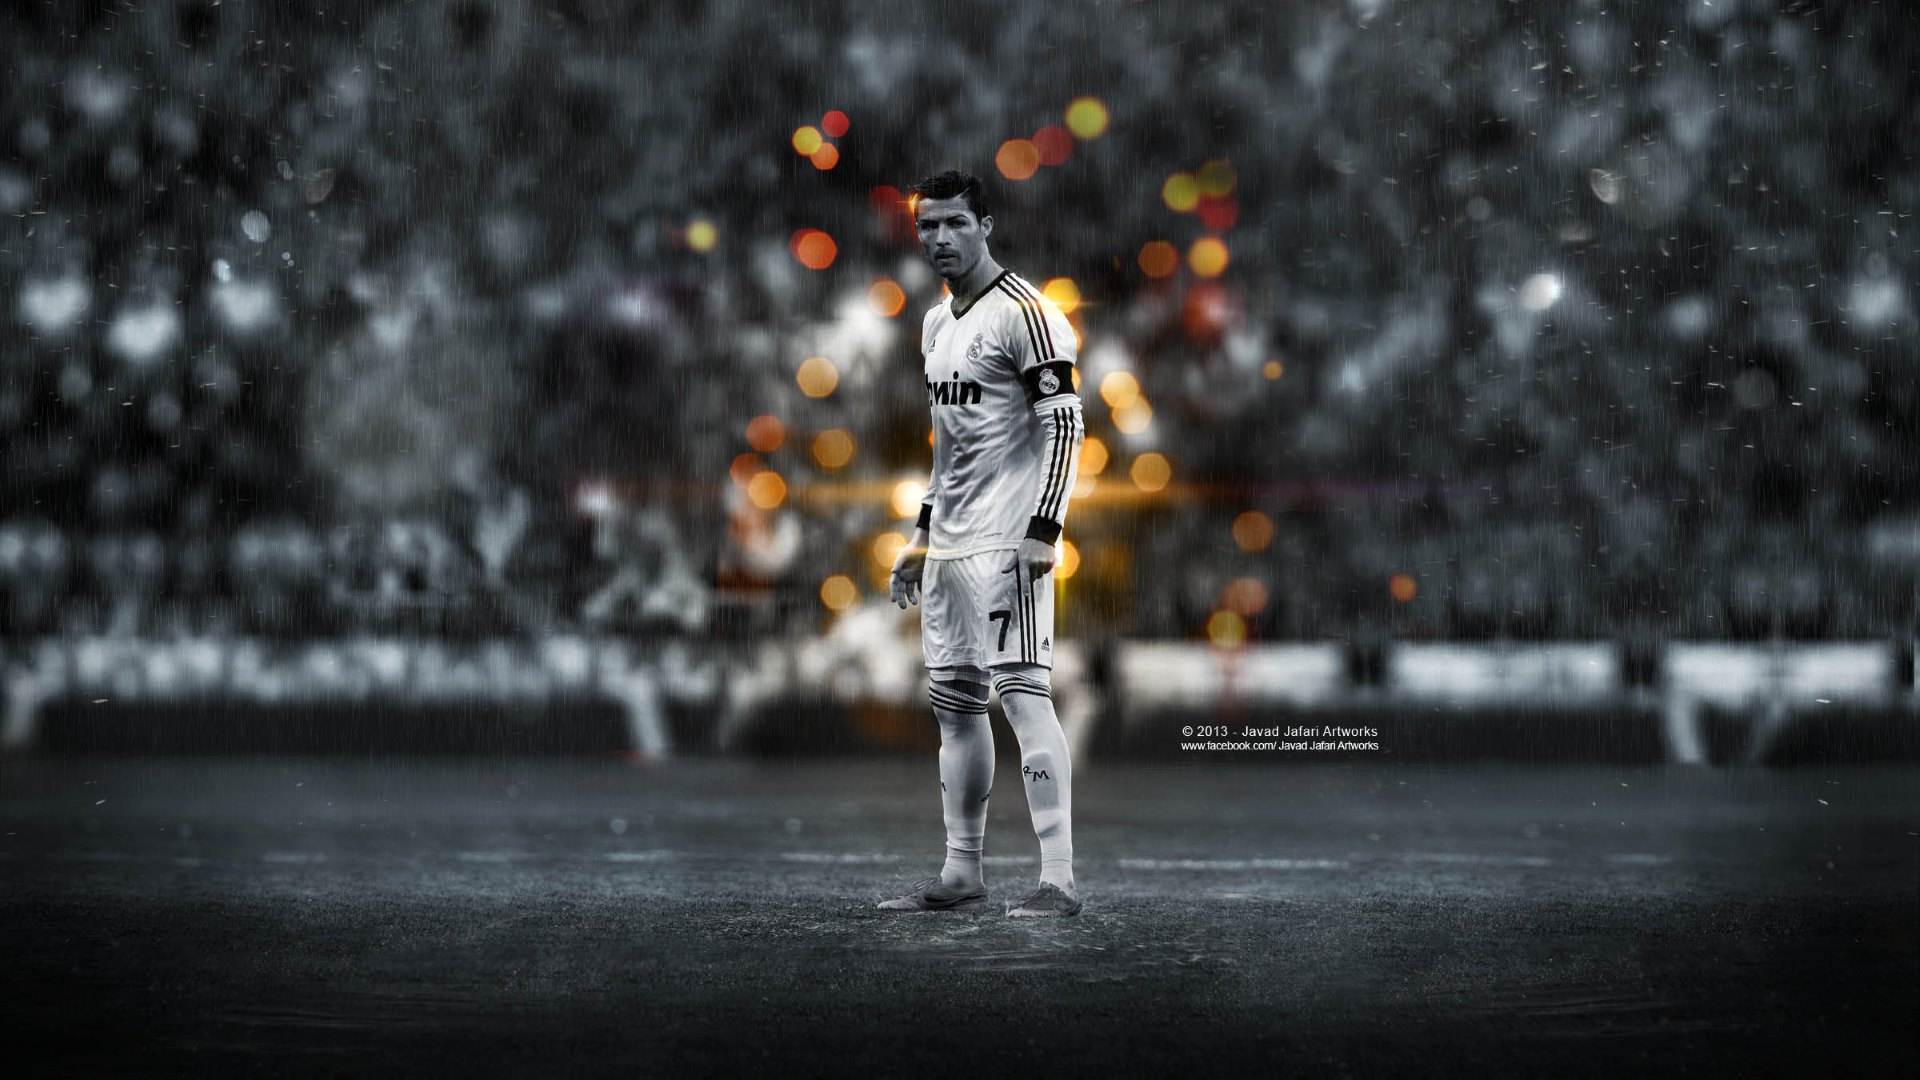 Cristiano Ronaldo Wallpapers HD smart